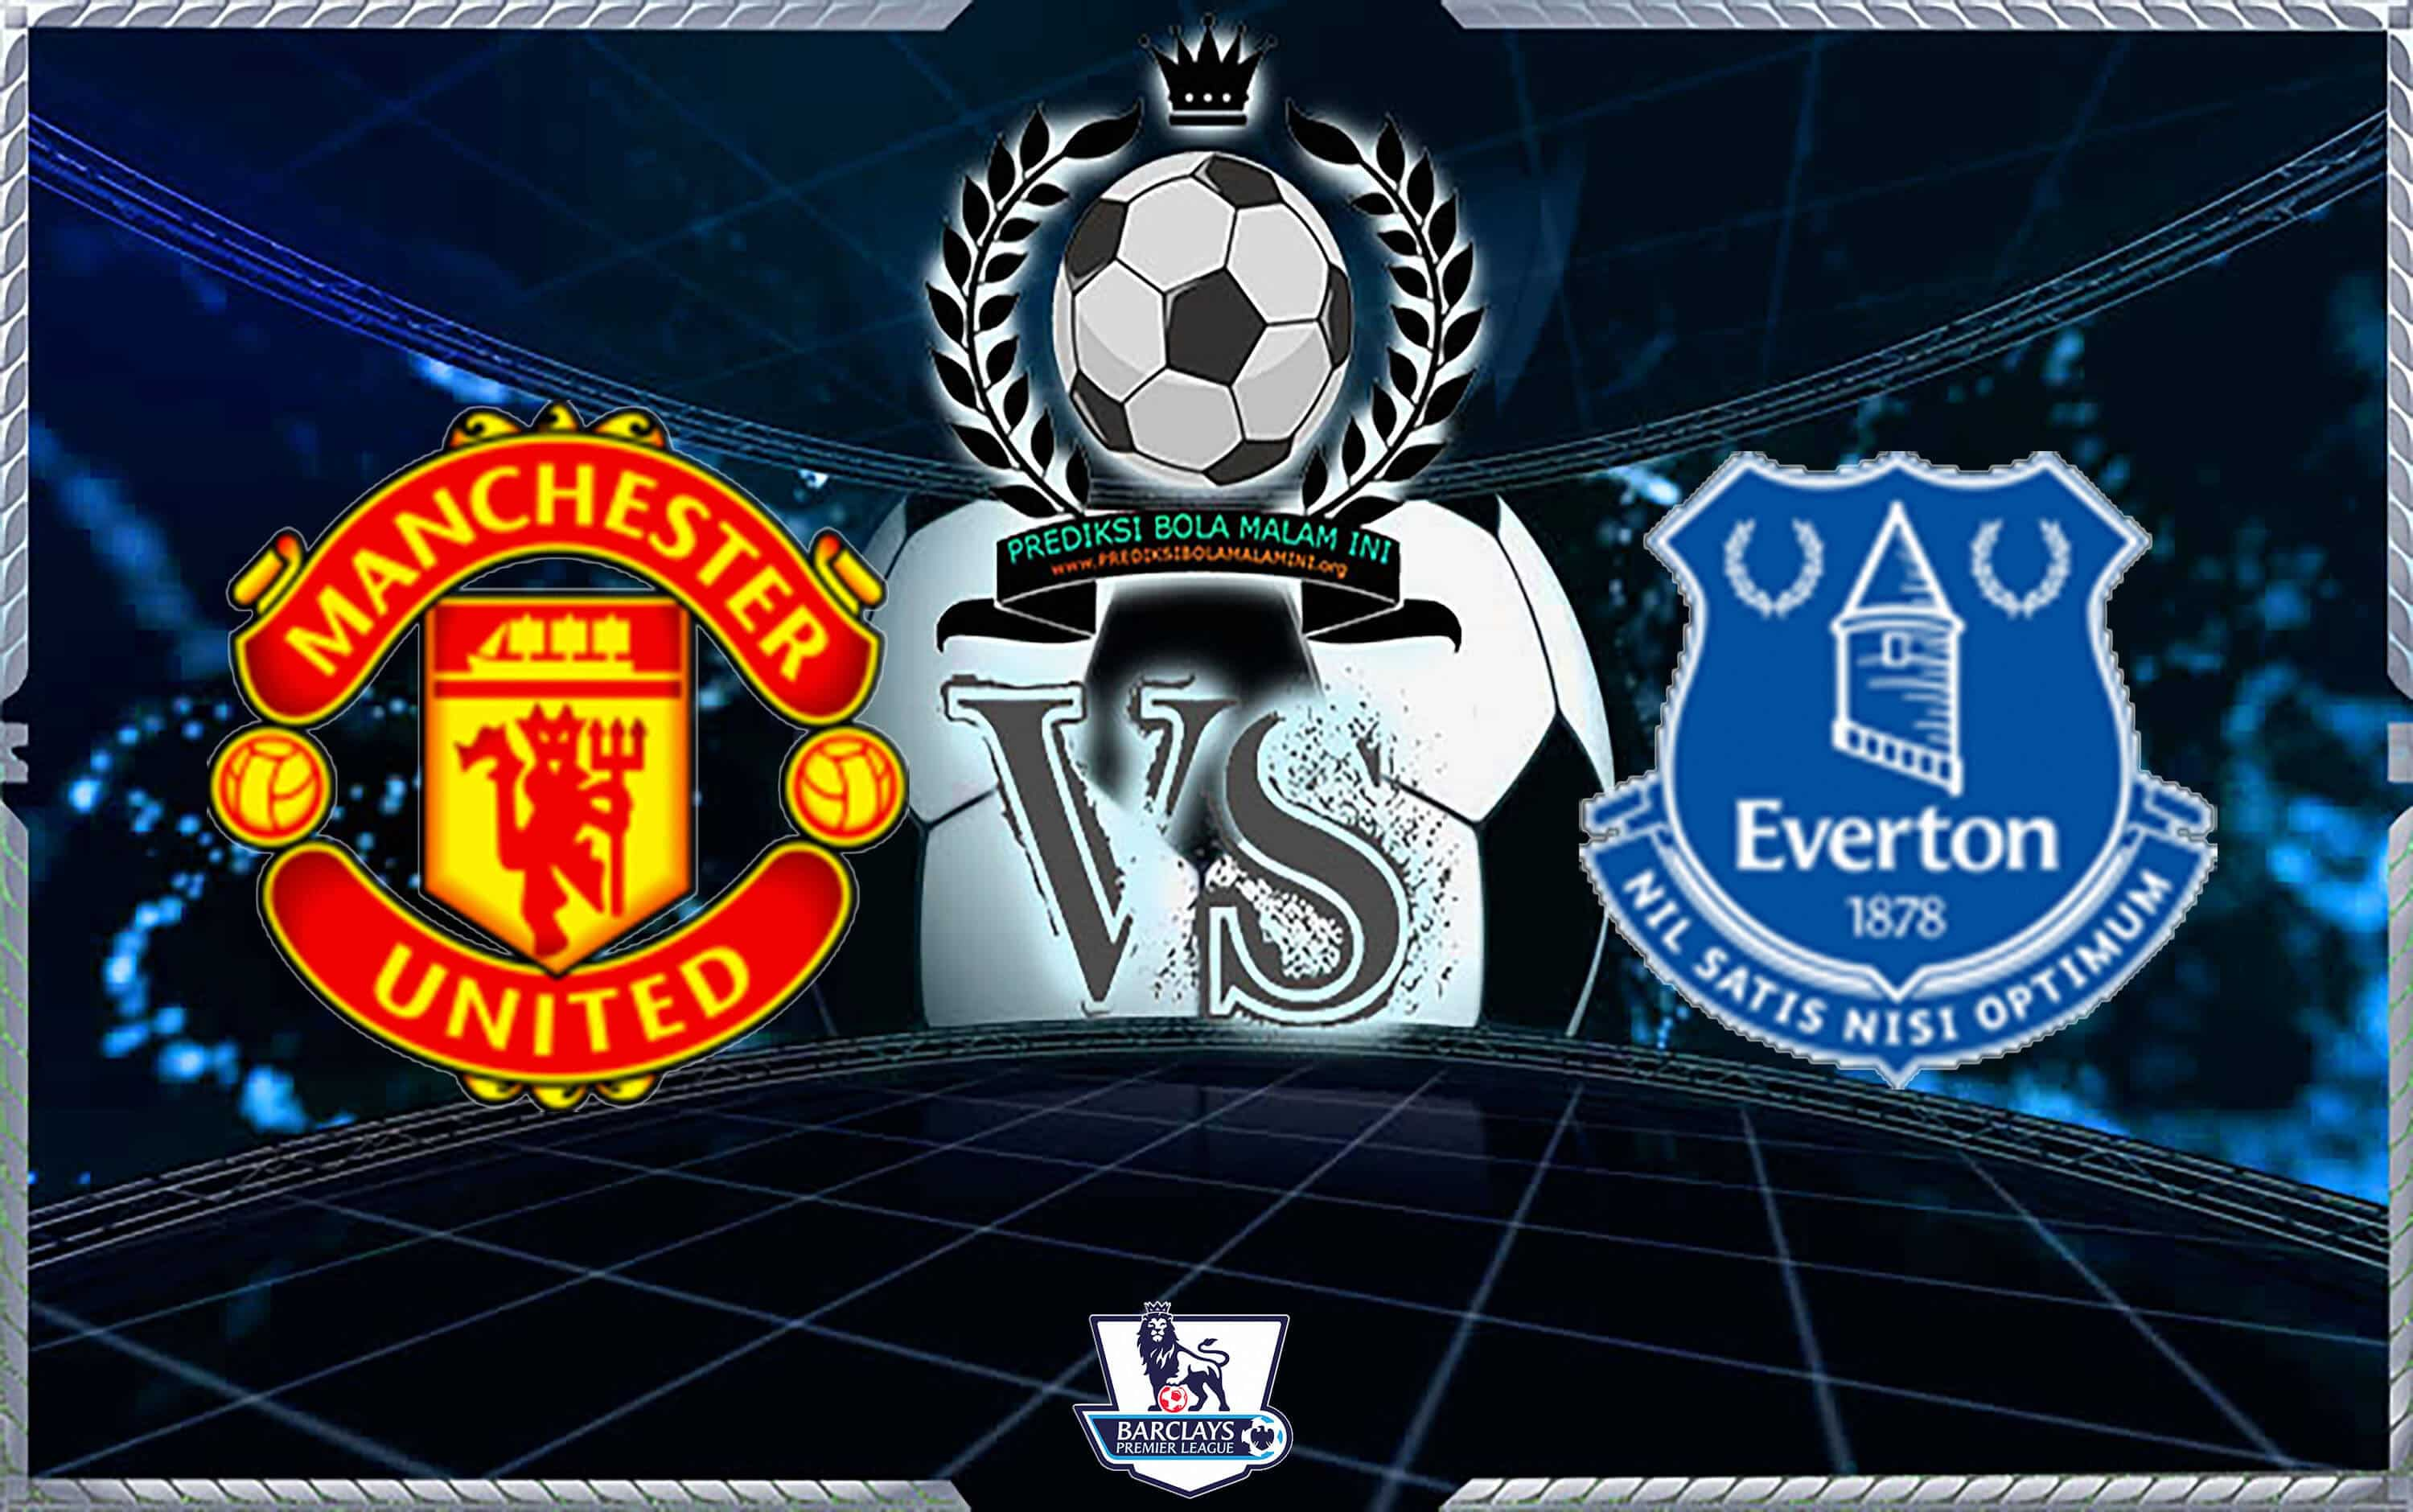 Memprediksi Skor MANCHESTER UNITED Vs EVERTON 28 Oktober 2018